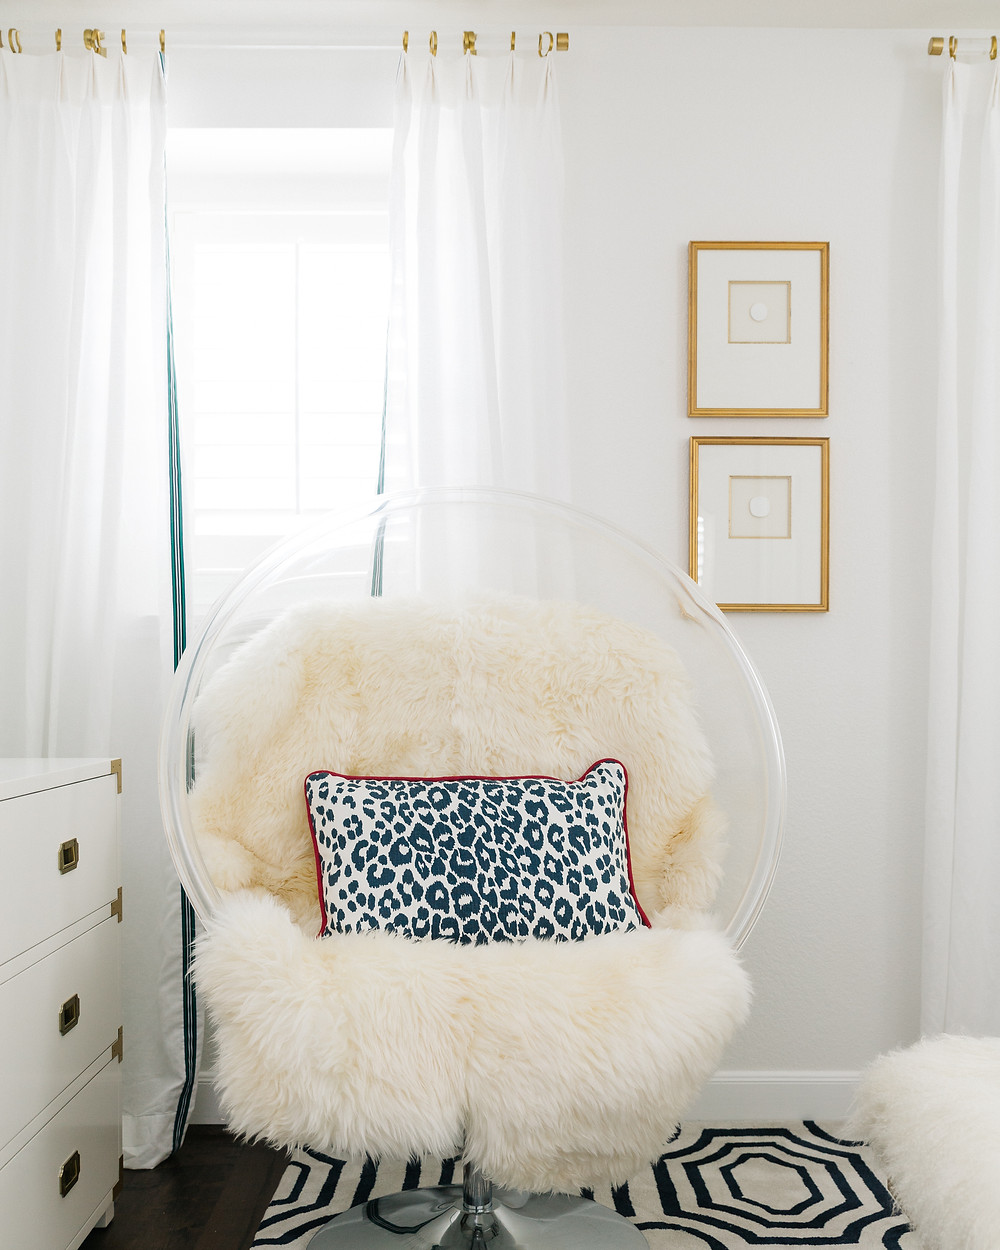 Acrylic bubble chair with lambs wool rug, white walls with white draperies